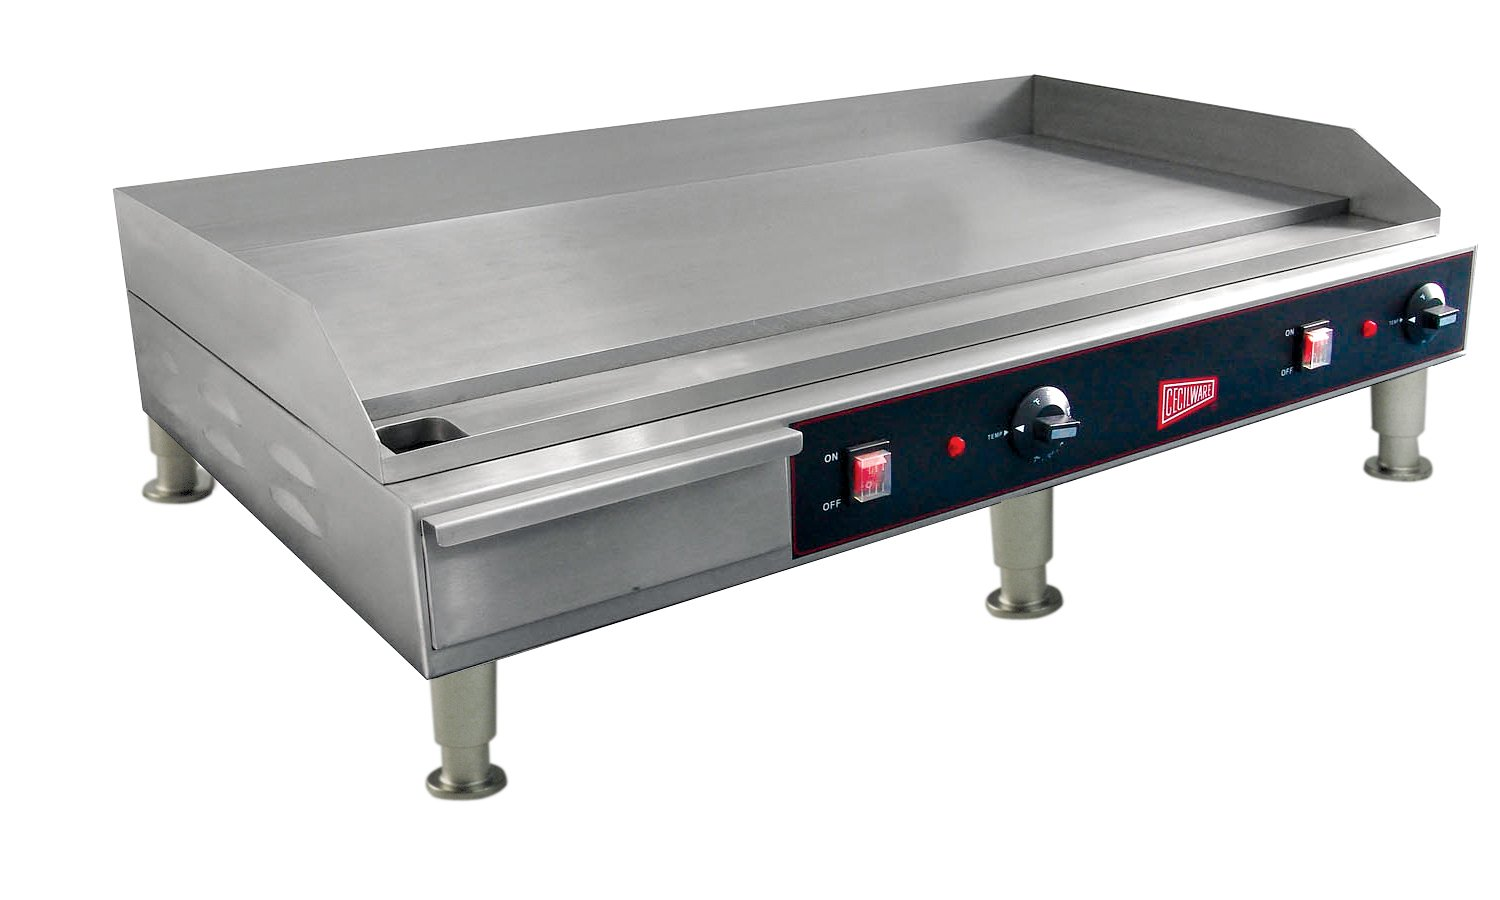 Grindmaster-Cecilware EL1636 Medium Duty Steel and Stainless Steel Electric Griddles, 36-Inch by Lee Global Imports and Consulting, Inc.